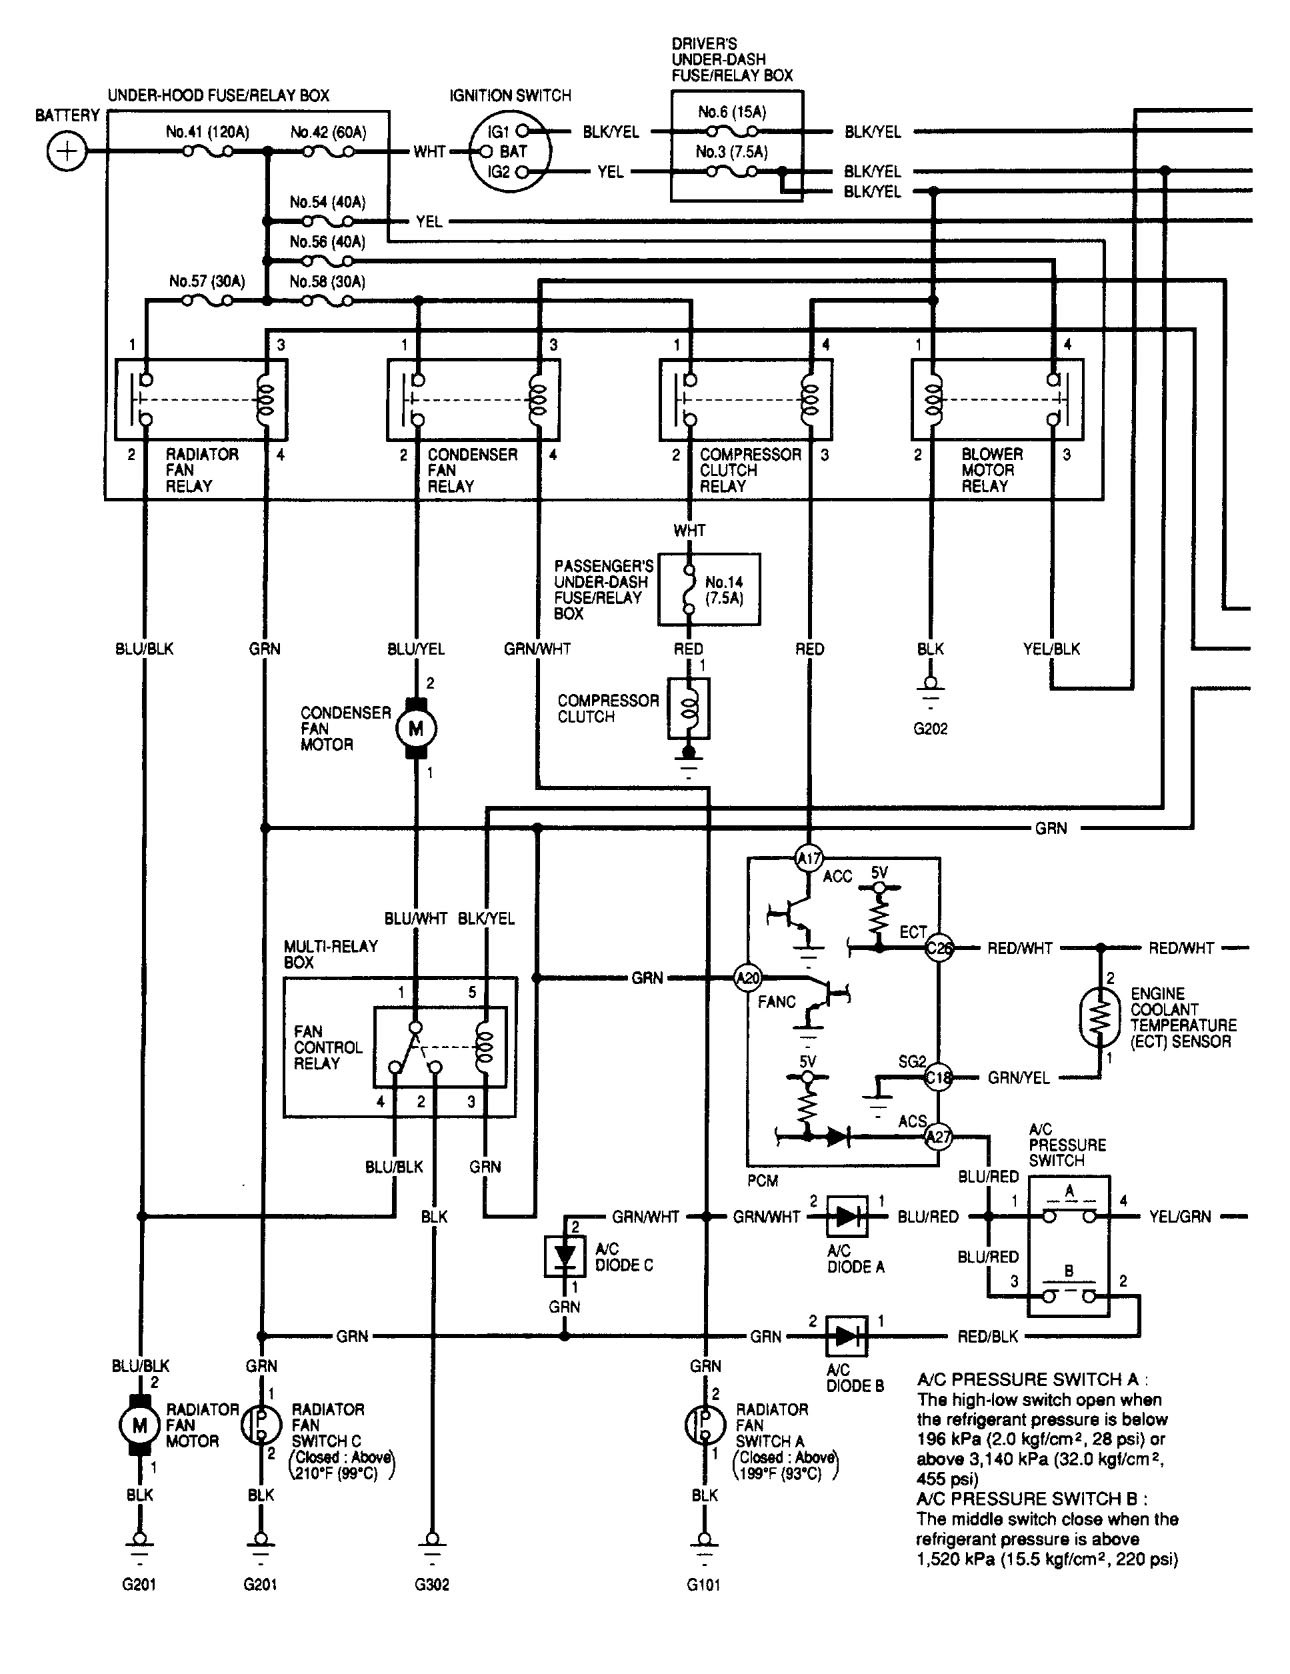 Basic Hvac Control Wiring Best Secret Diagram Ladder Diagrams Library Air Conditioning